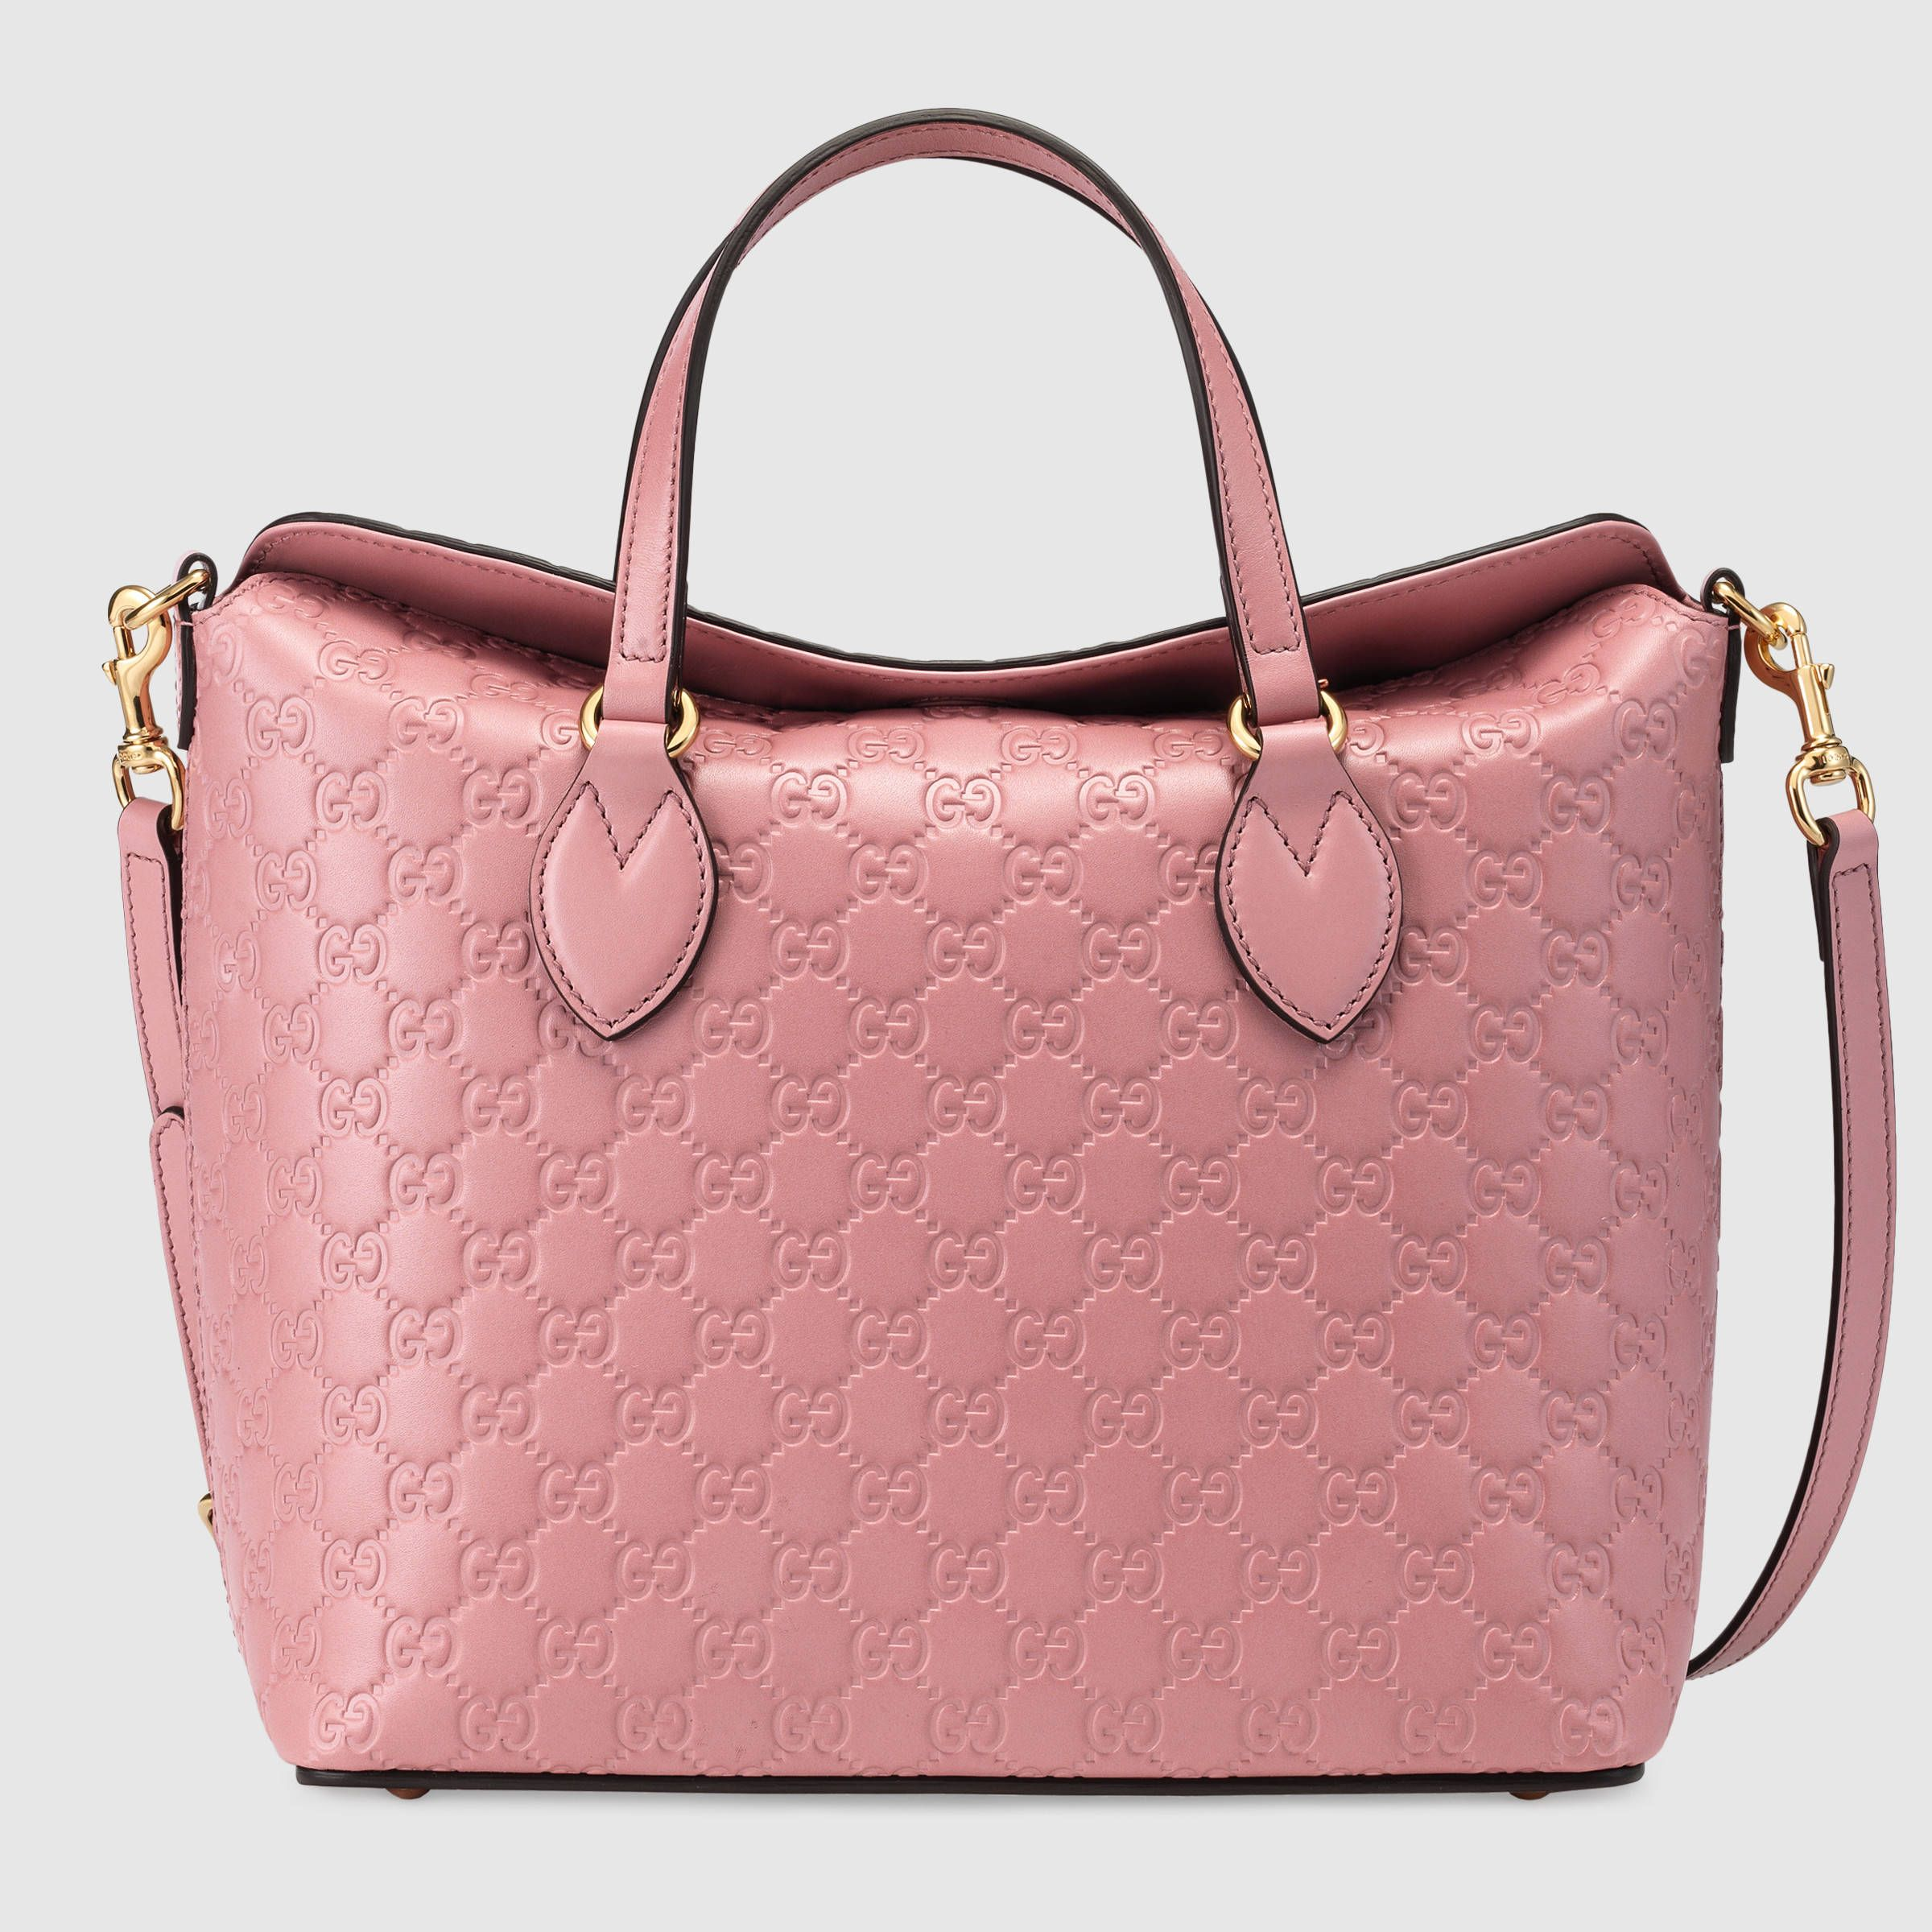 d65114d220b0 Gucci Signature Leather Top Handle Bag in Candy Pink - $2,255 | 手袋 ...